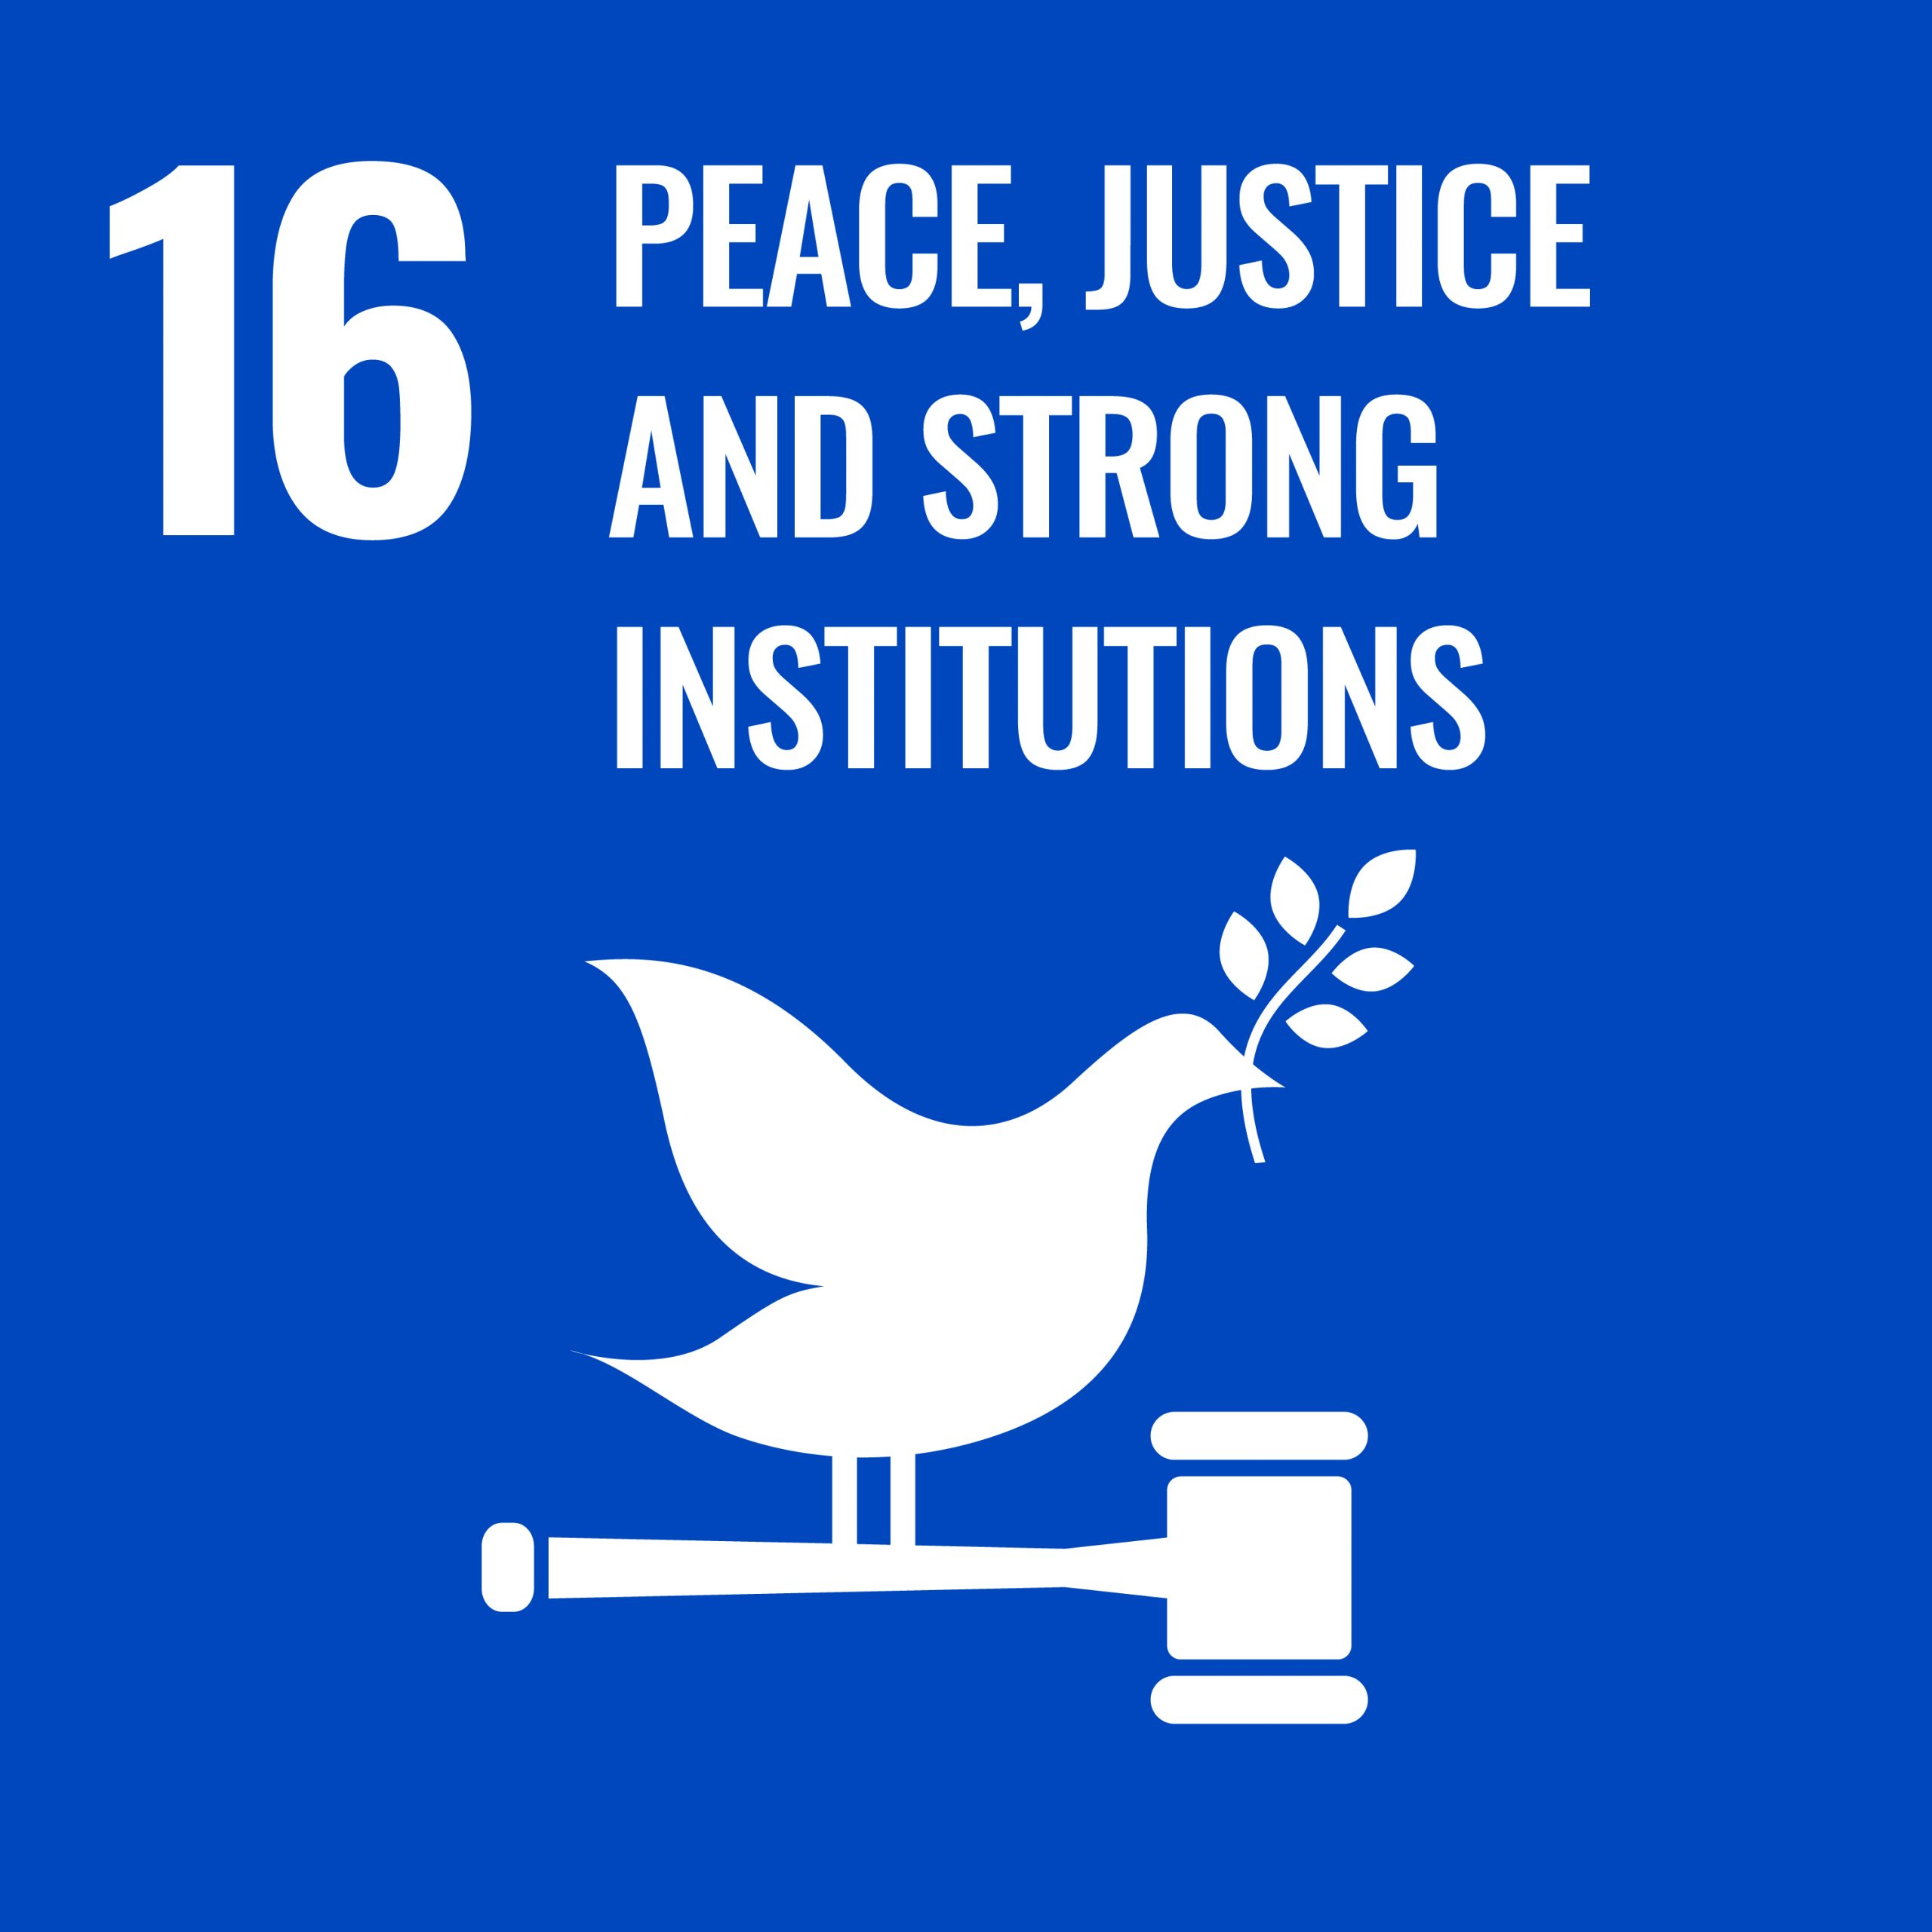 Peace Justice and Strong institutions - SDG 16